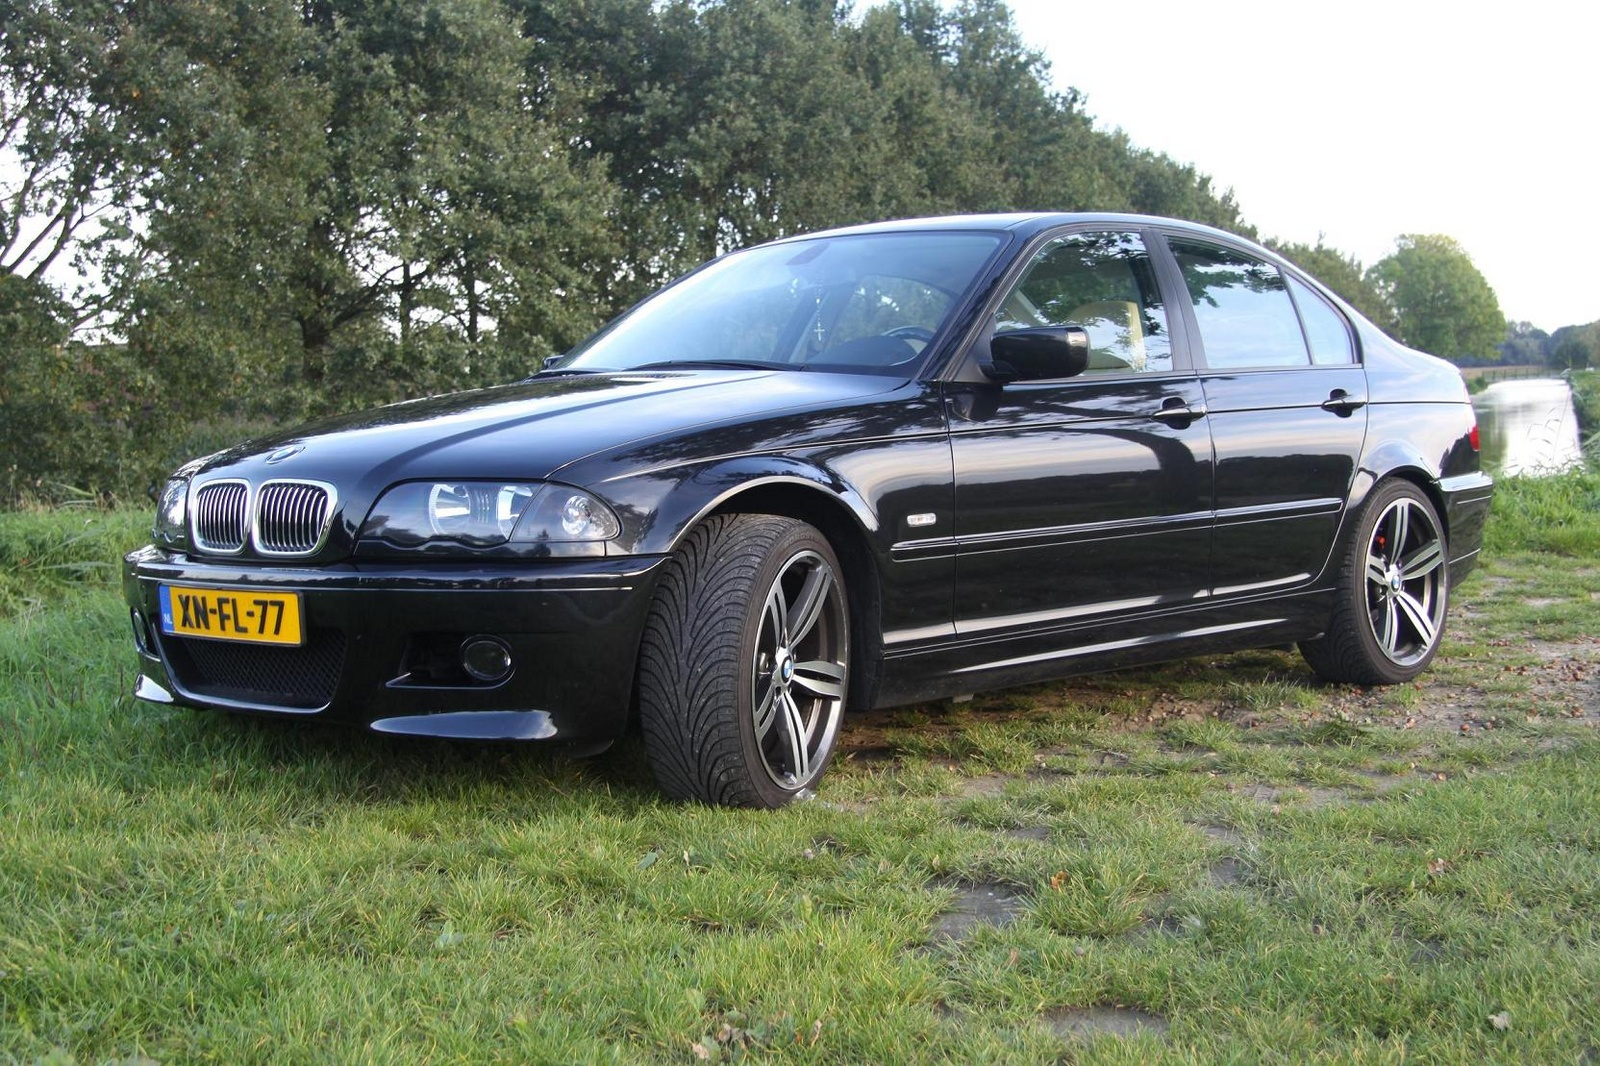 BMW 3 series 318i 2000 photo - 1